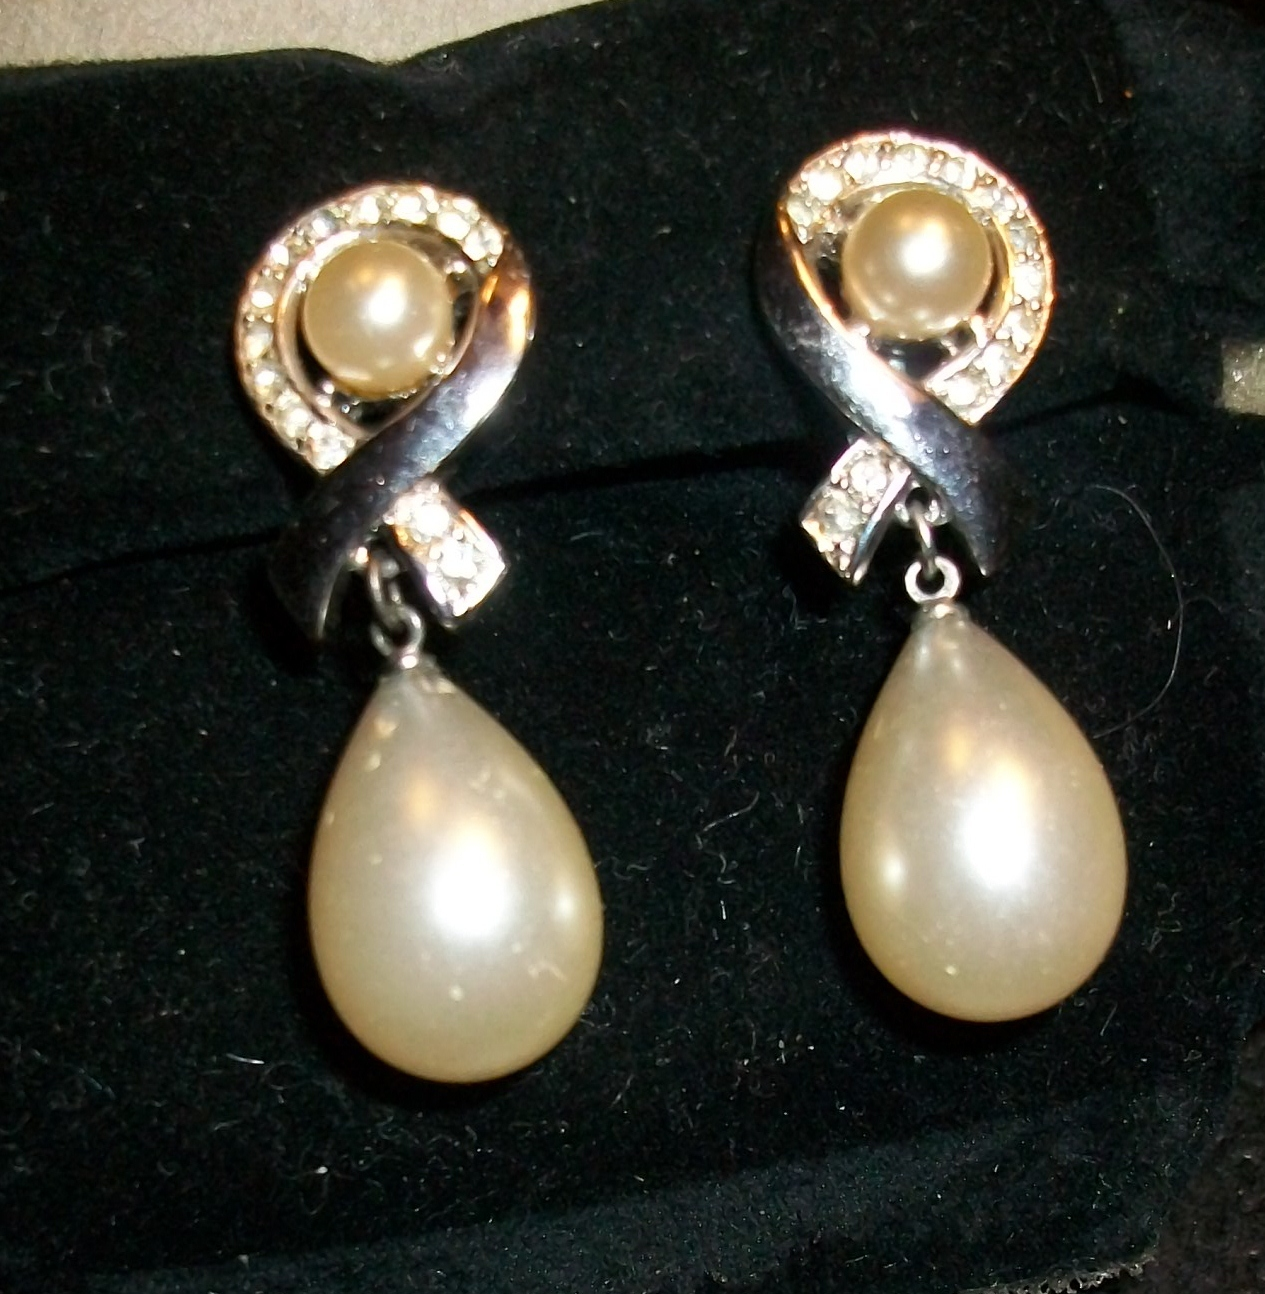 Vintage Trifari Faux Pearl and Rhinestone Drop Earrings - Clip-on